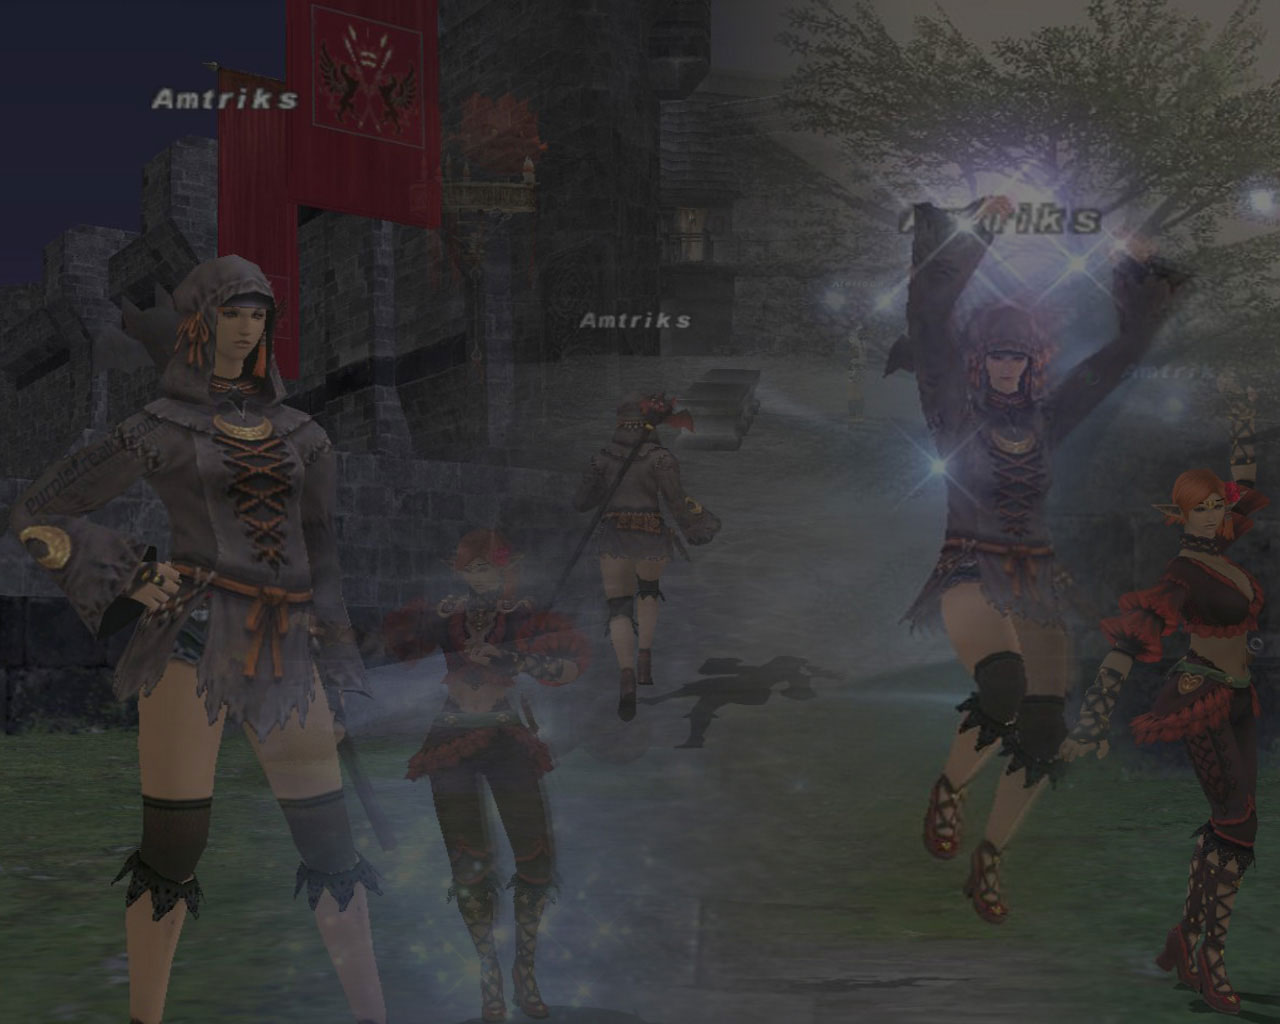 Final Fantasy XI Amtriks Wallpaper